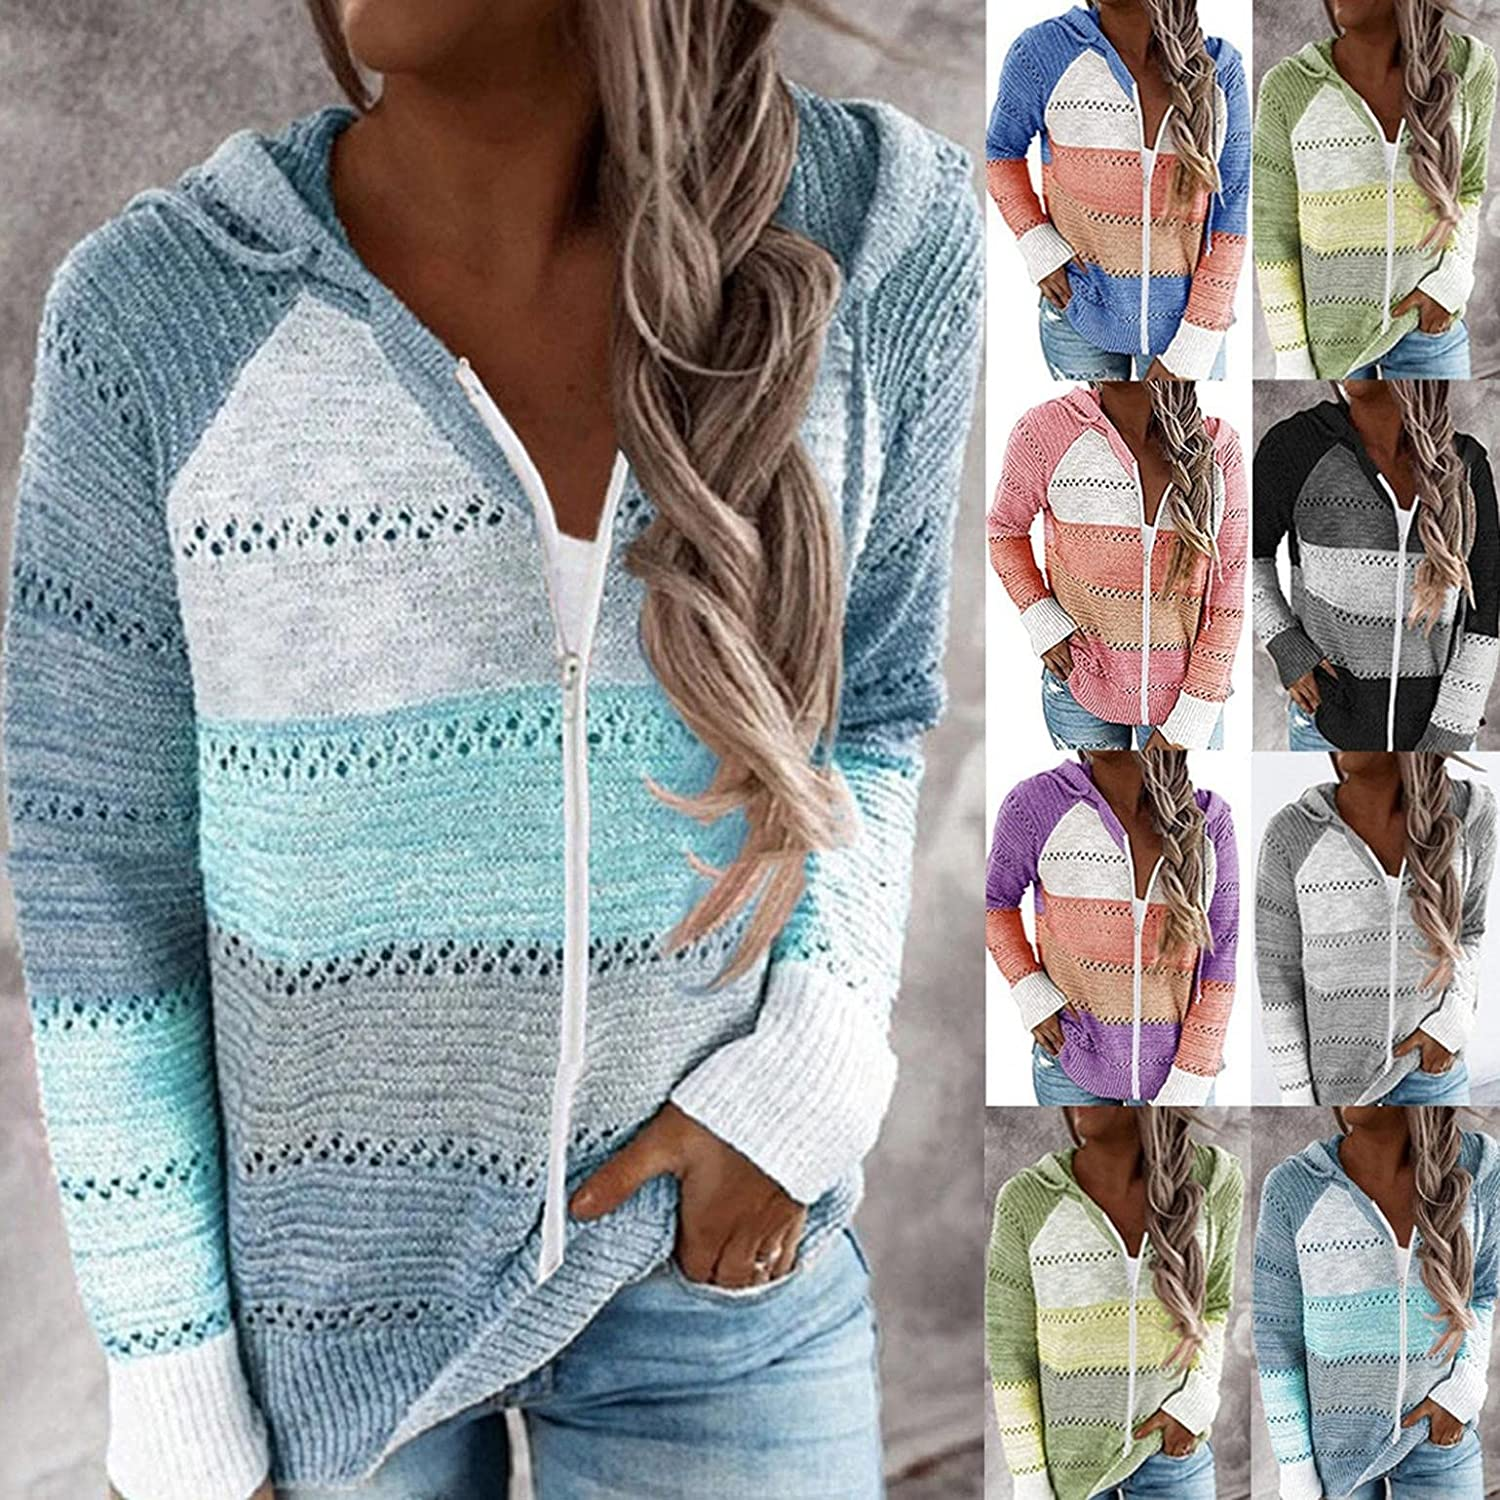 Haheyrte Womens Hoodies Casual Patchwork Long Sleeve Hooded Sweater Cardigan Casual Sweatshirts Pullover Tops